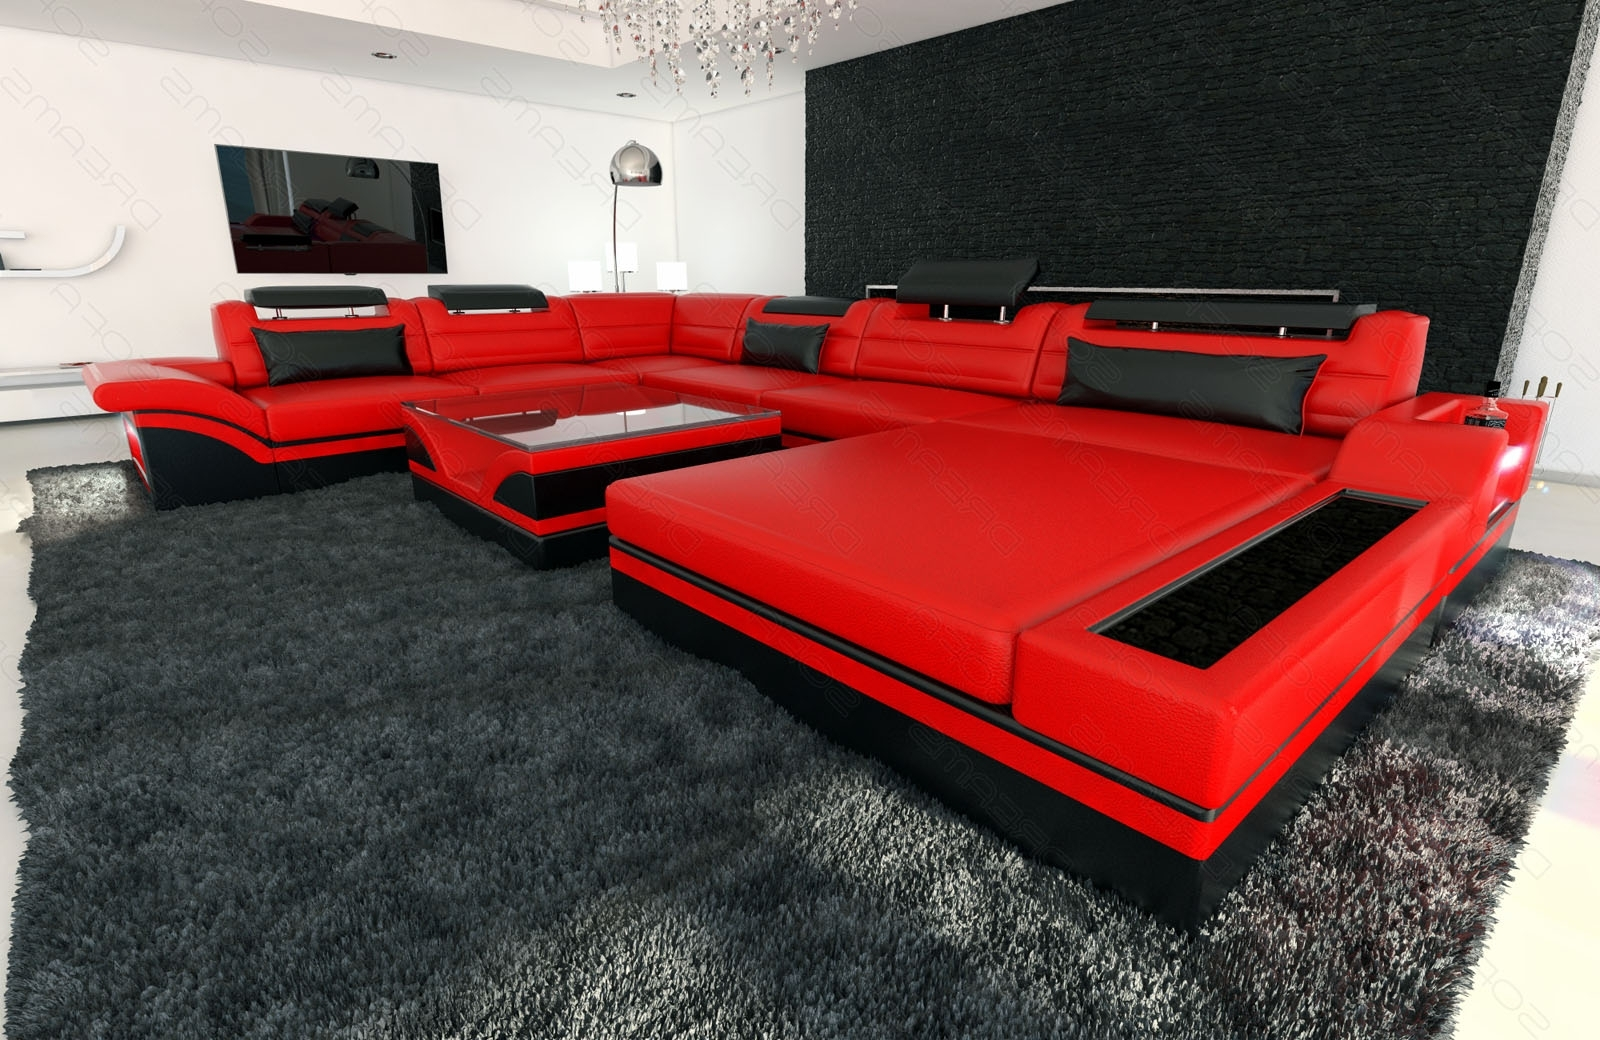 Ebay In Red And Black Sofas (Gallery 14 of 20)